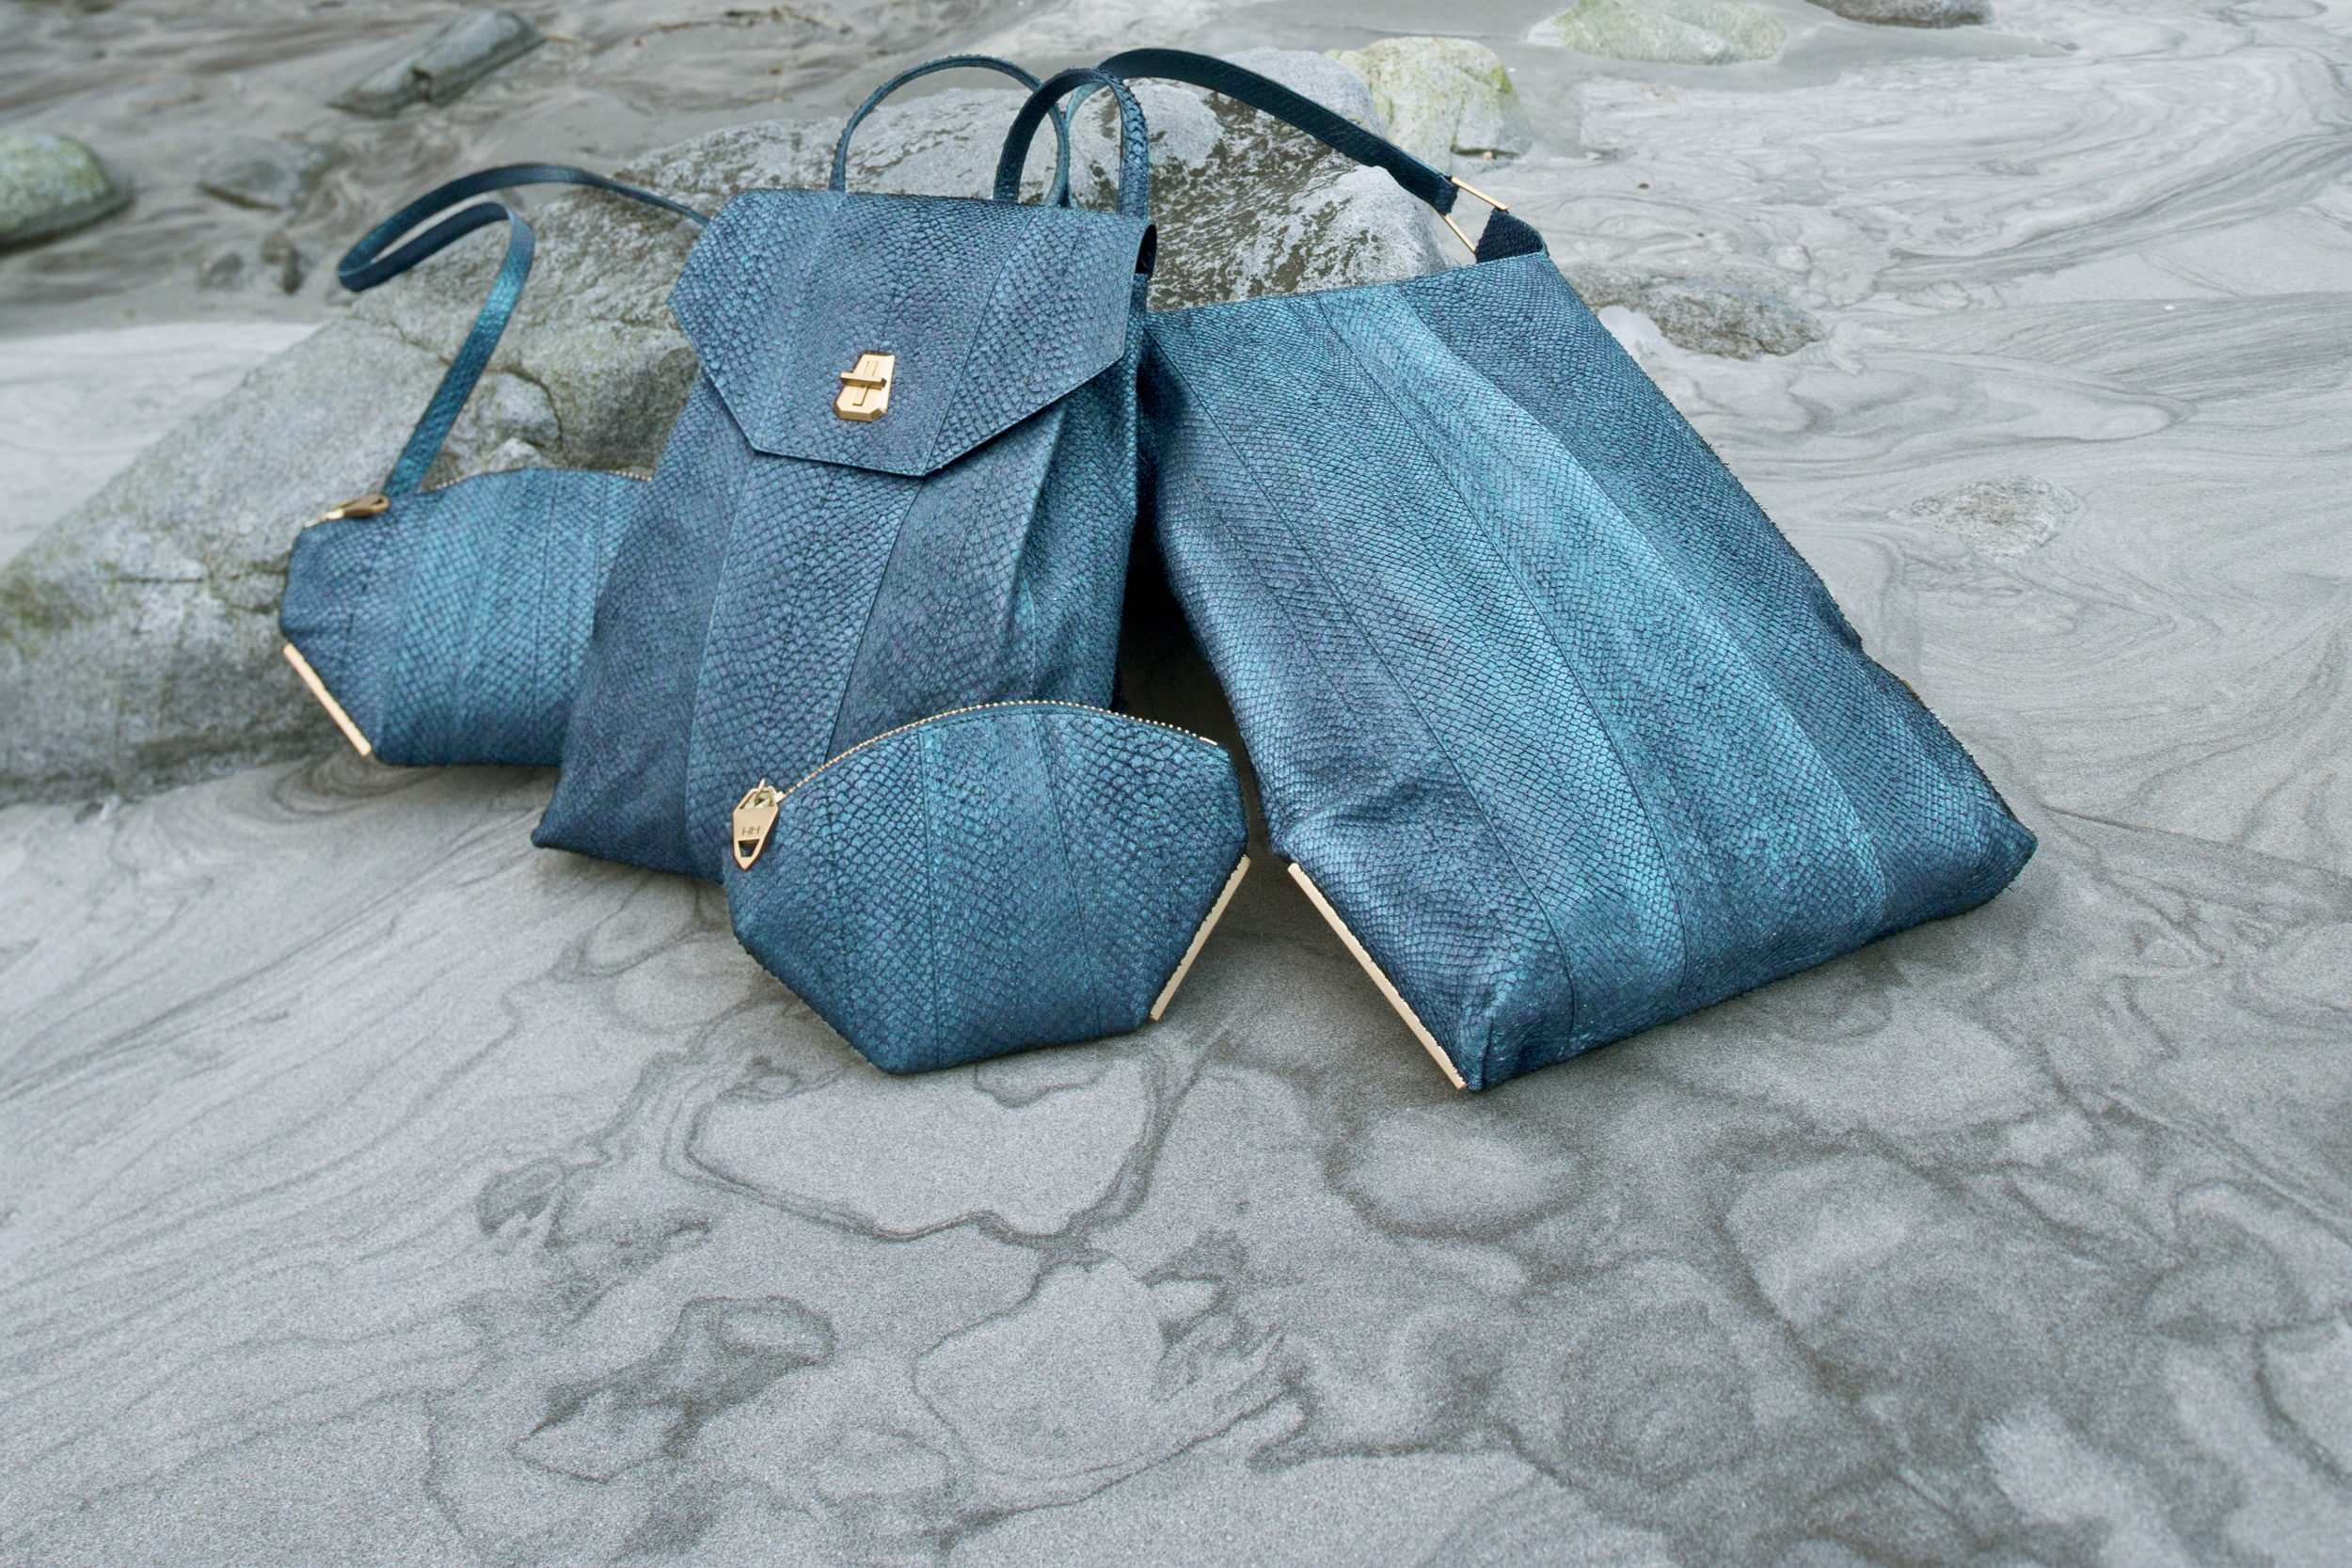 AITCH AITCH collection in teal image courtesy of designer